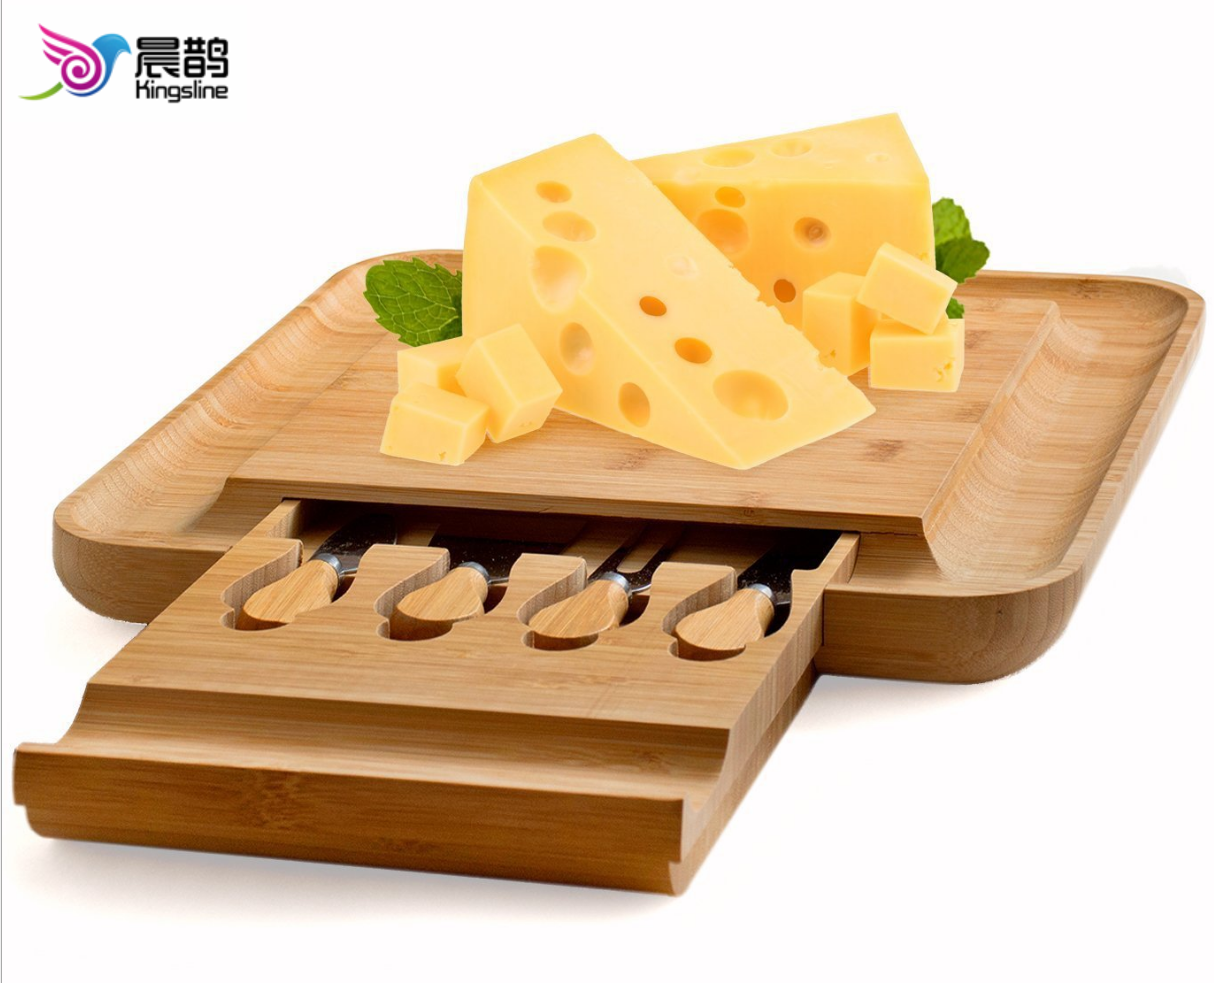 Bamboo Cheese Board Set with Hidden Slide Out Drawer - Cutlery Set Included (Drawer does not interrupt the use of the Cheese Board)